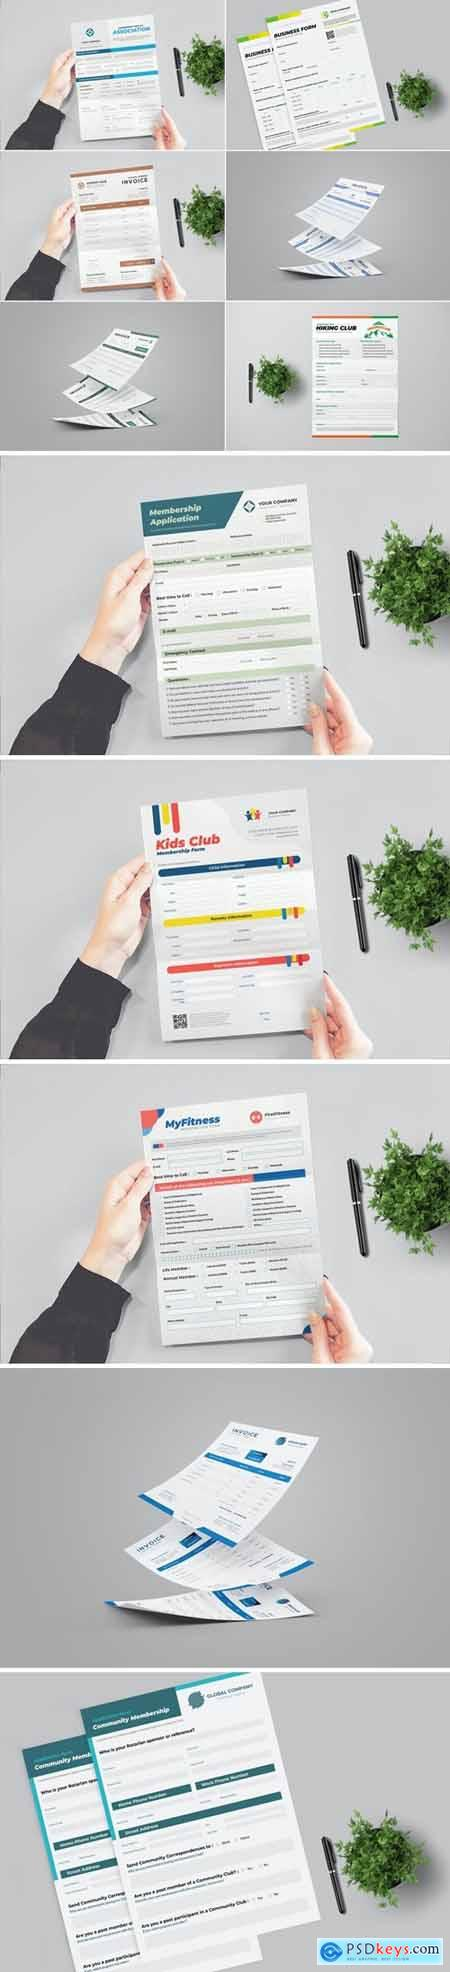 Clean Business Form and Invoice Template